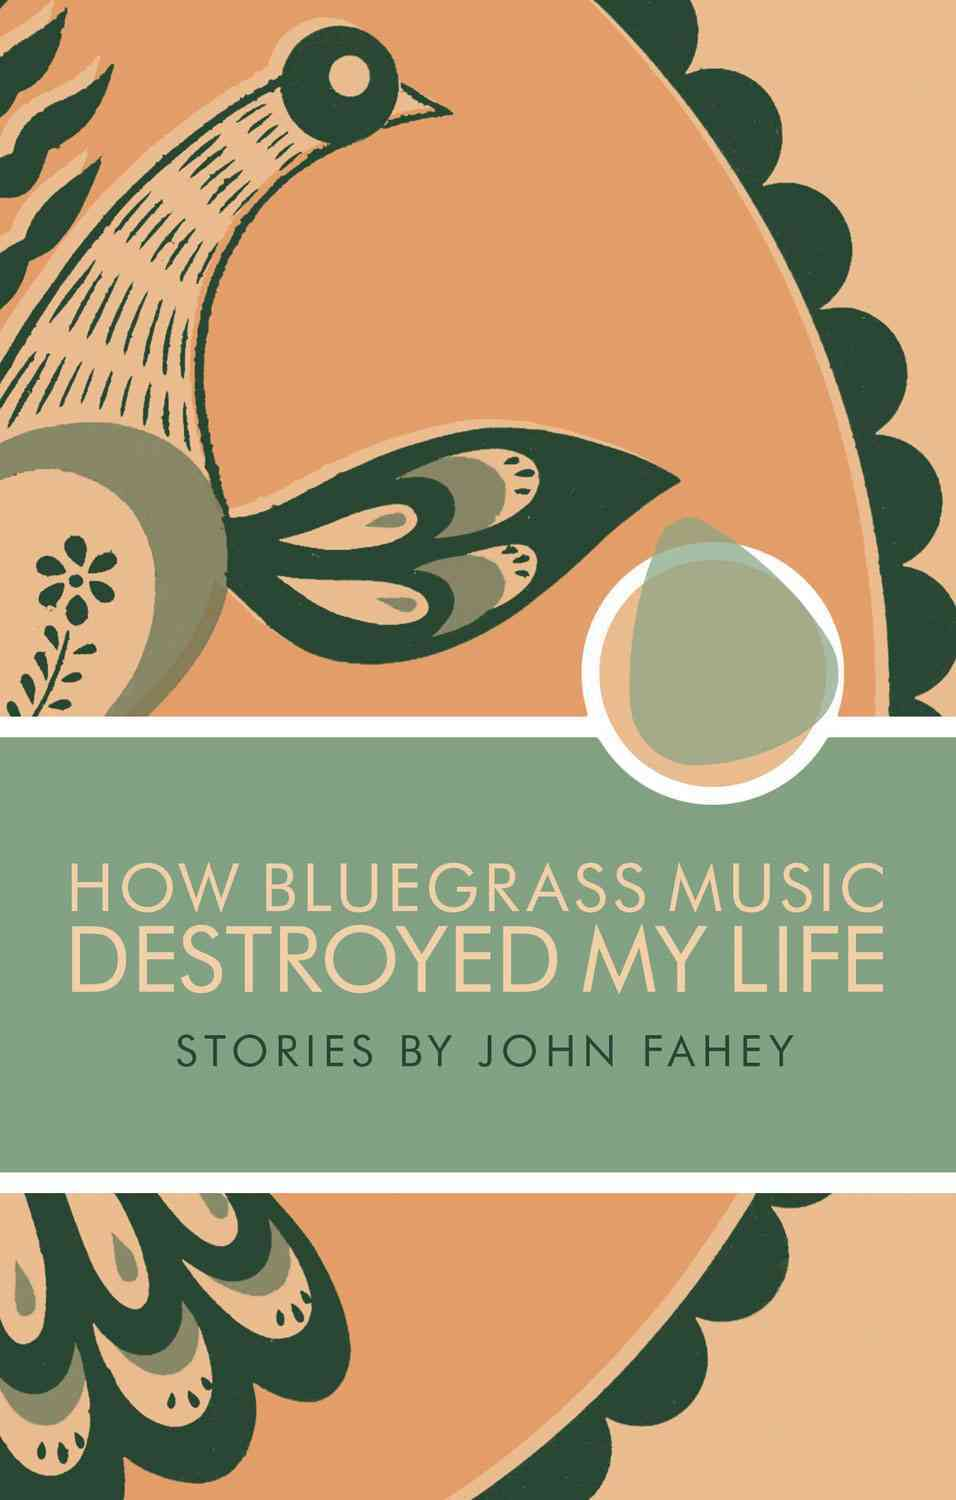 How Bluegrass Music Destroyed My Life By Fahey, John